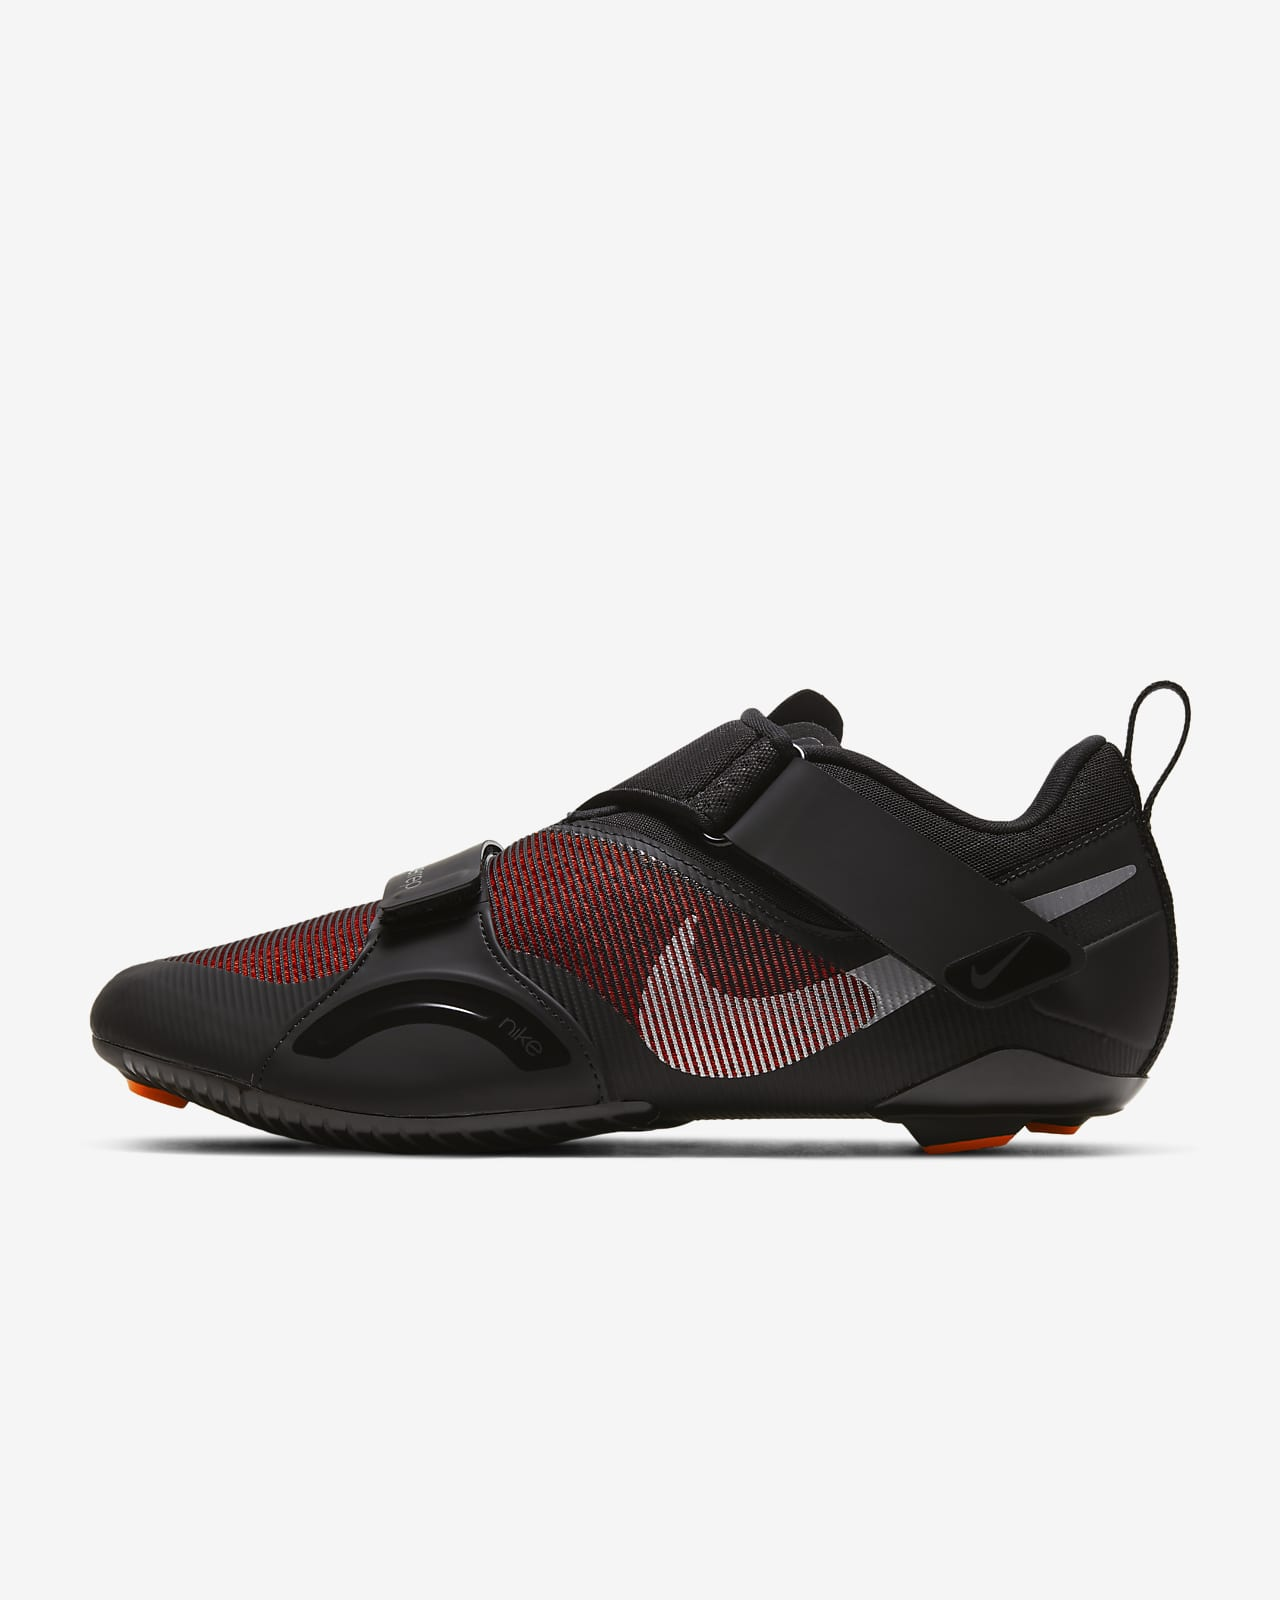 Nike SuperRep Cycle Men's Indoor Cycling Shoes